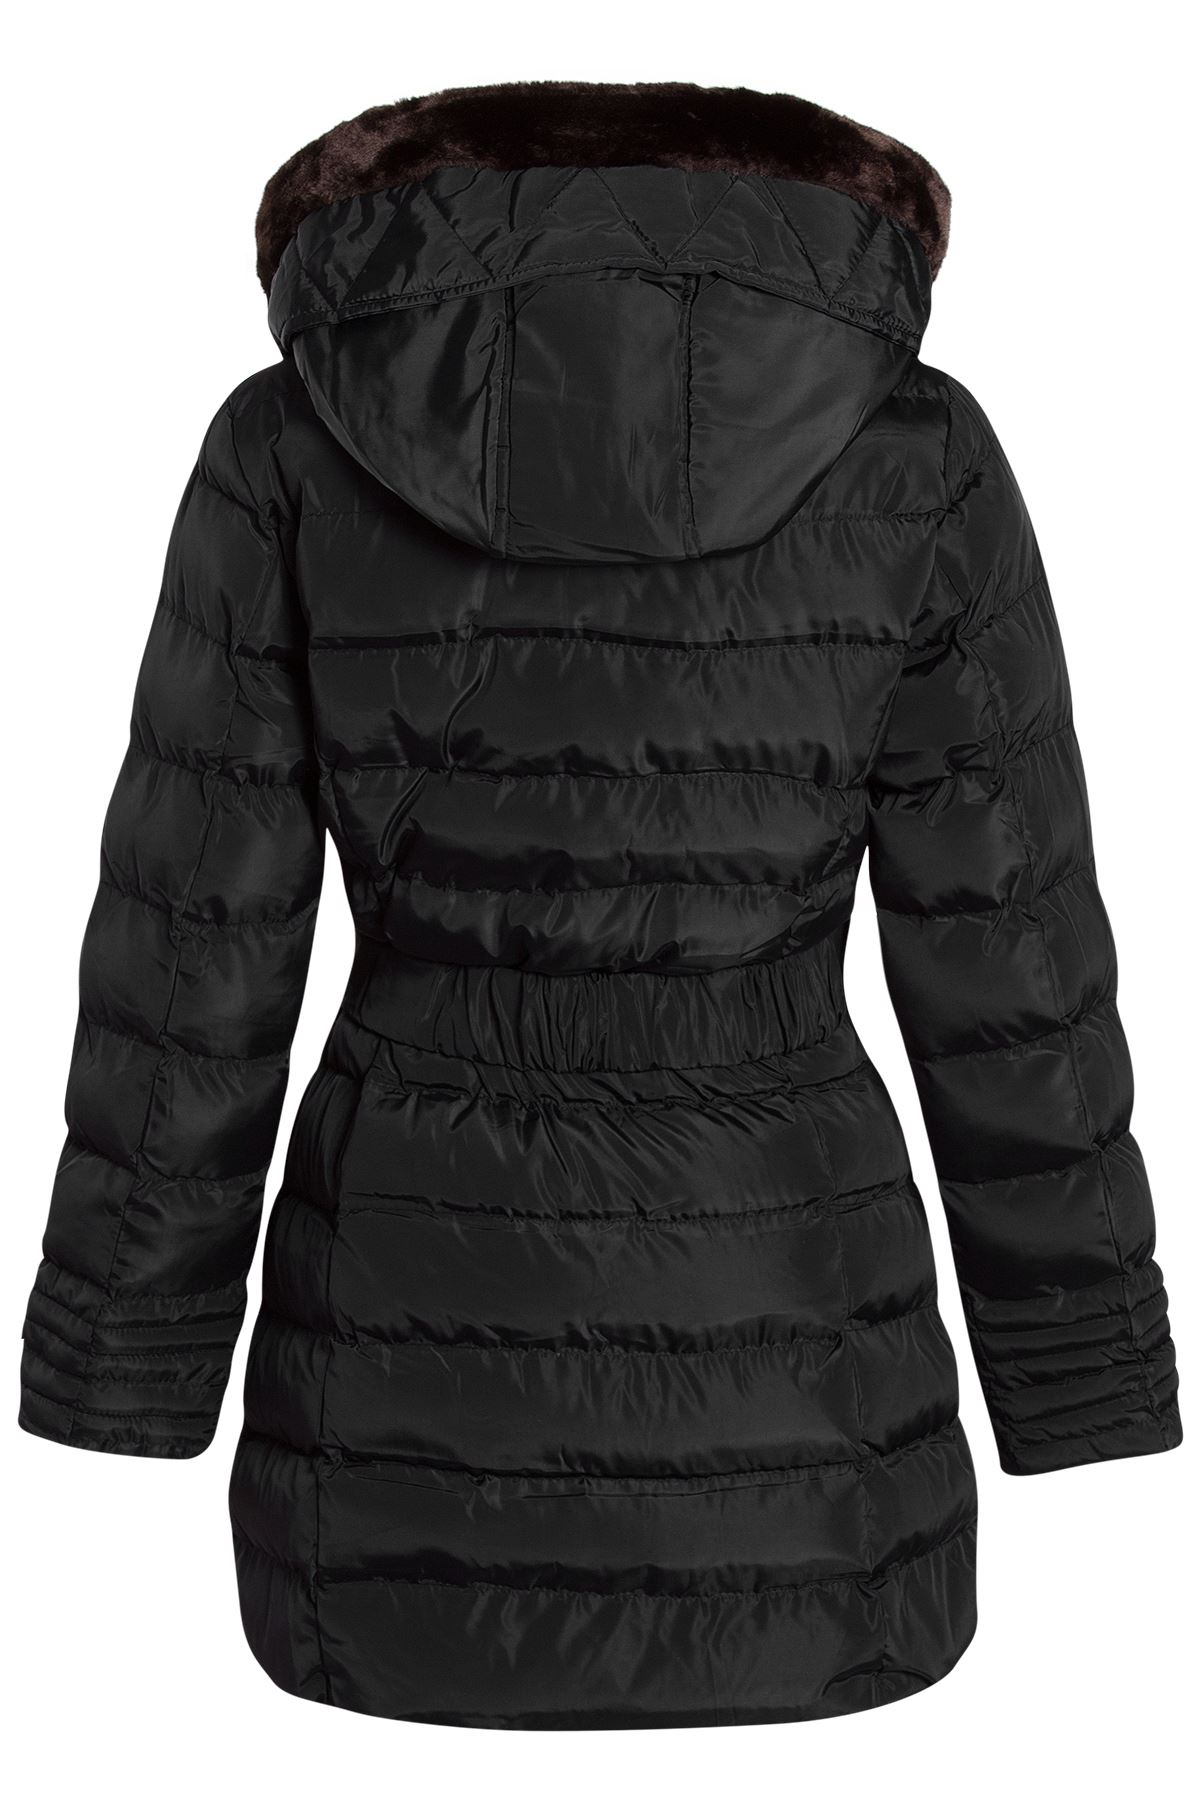 Womens Faux Fur Trim Hooded Quilted Padded Warm Long ...